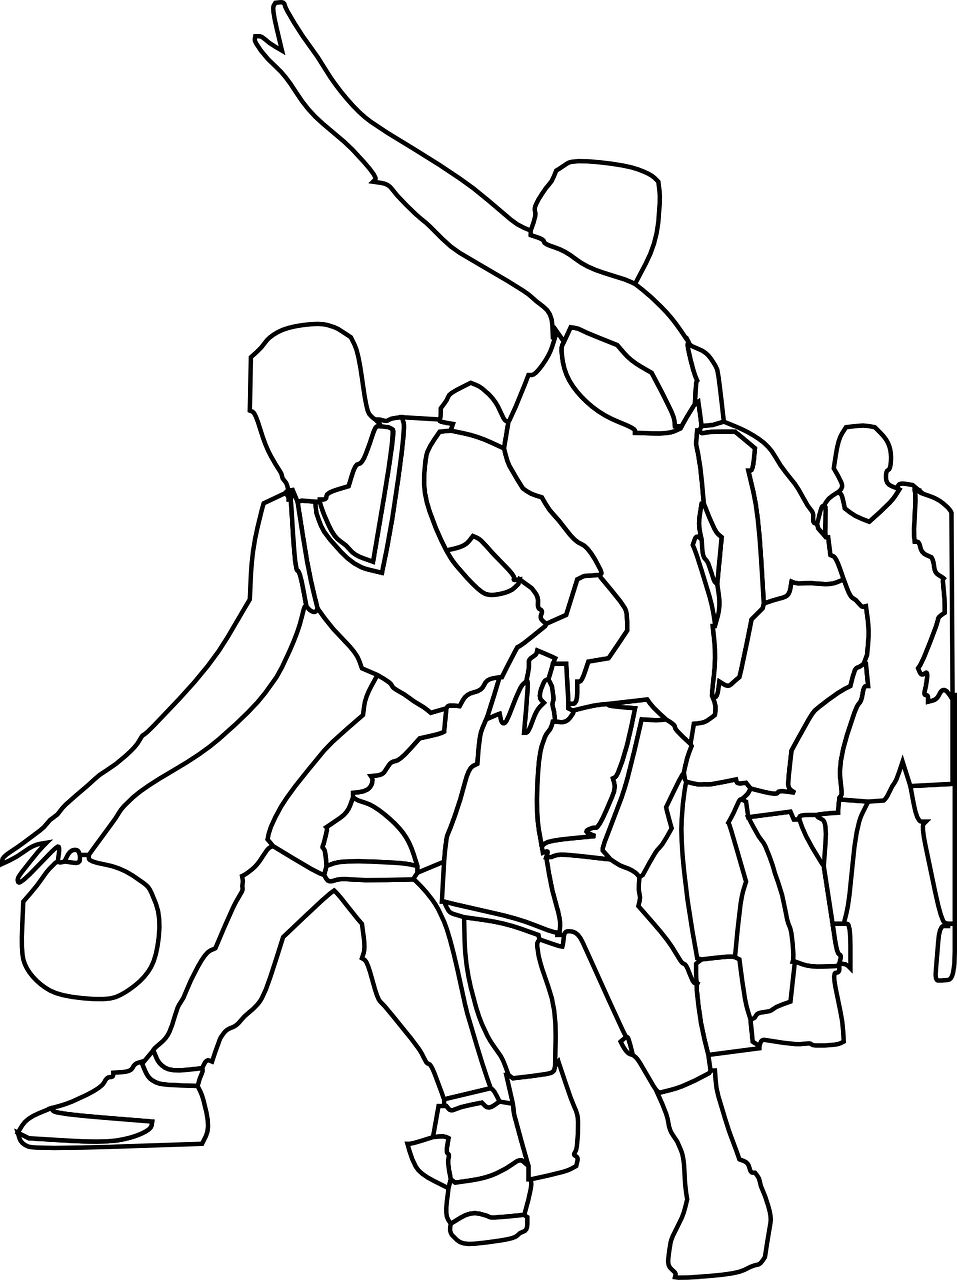 basketball players game free photo